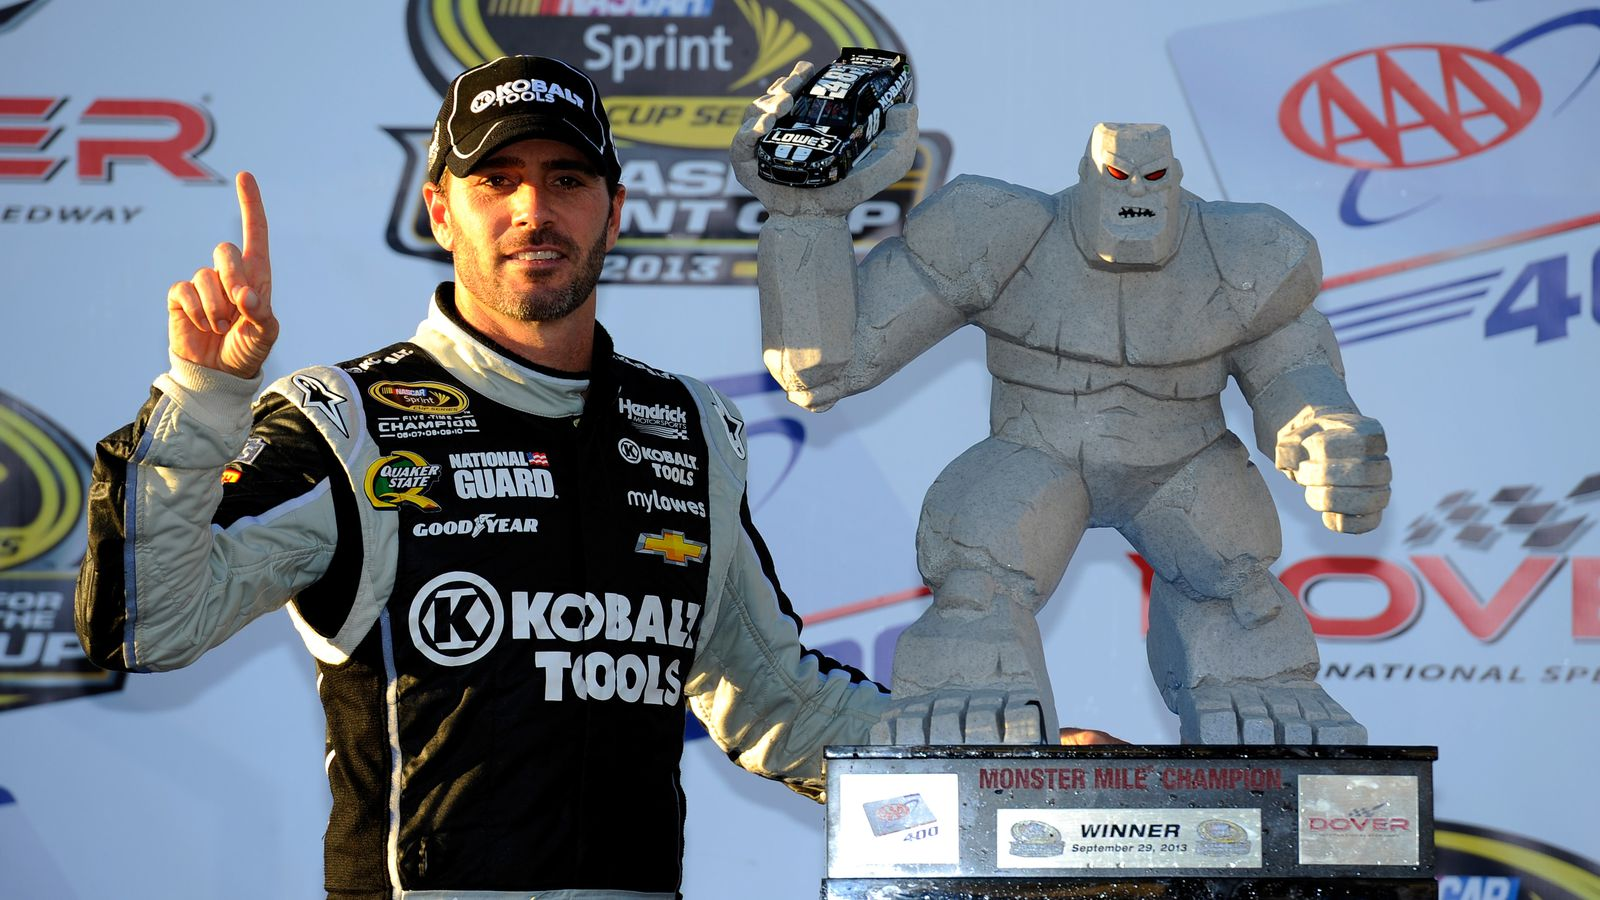 Jimmie Johnson Makes Championship Case With Dover Win